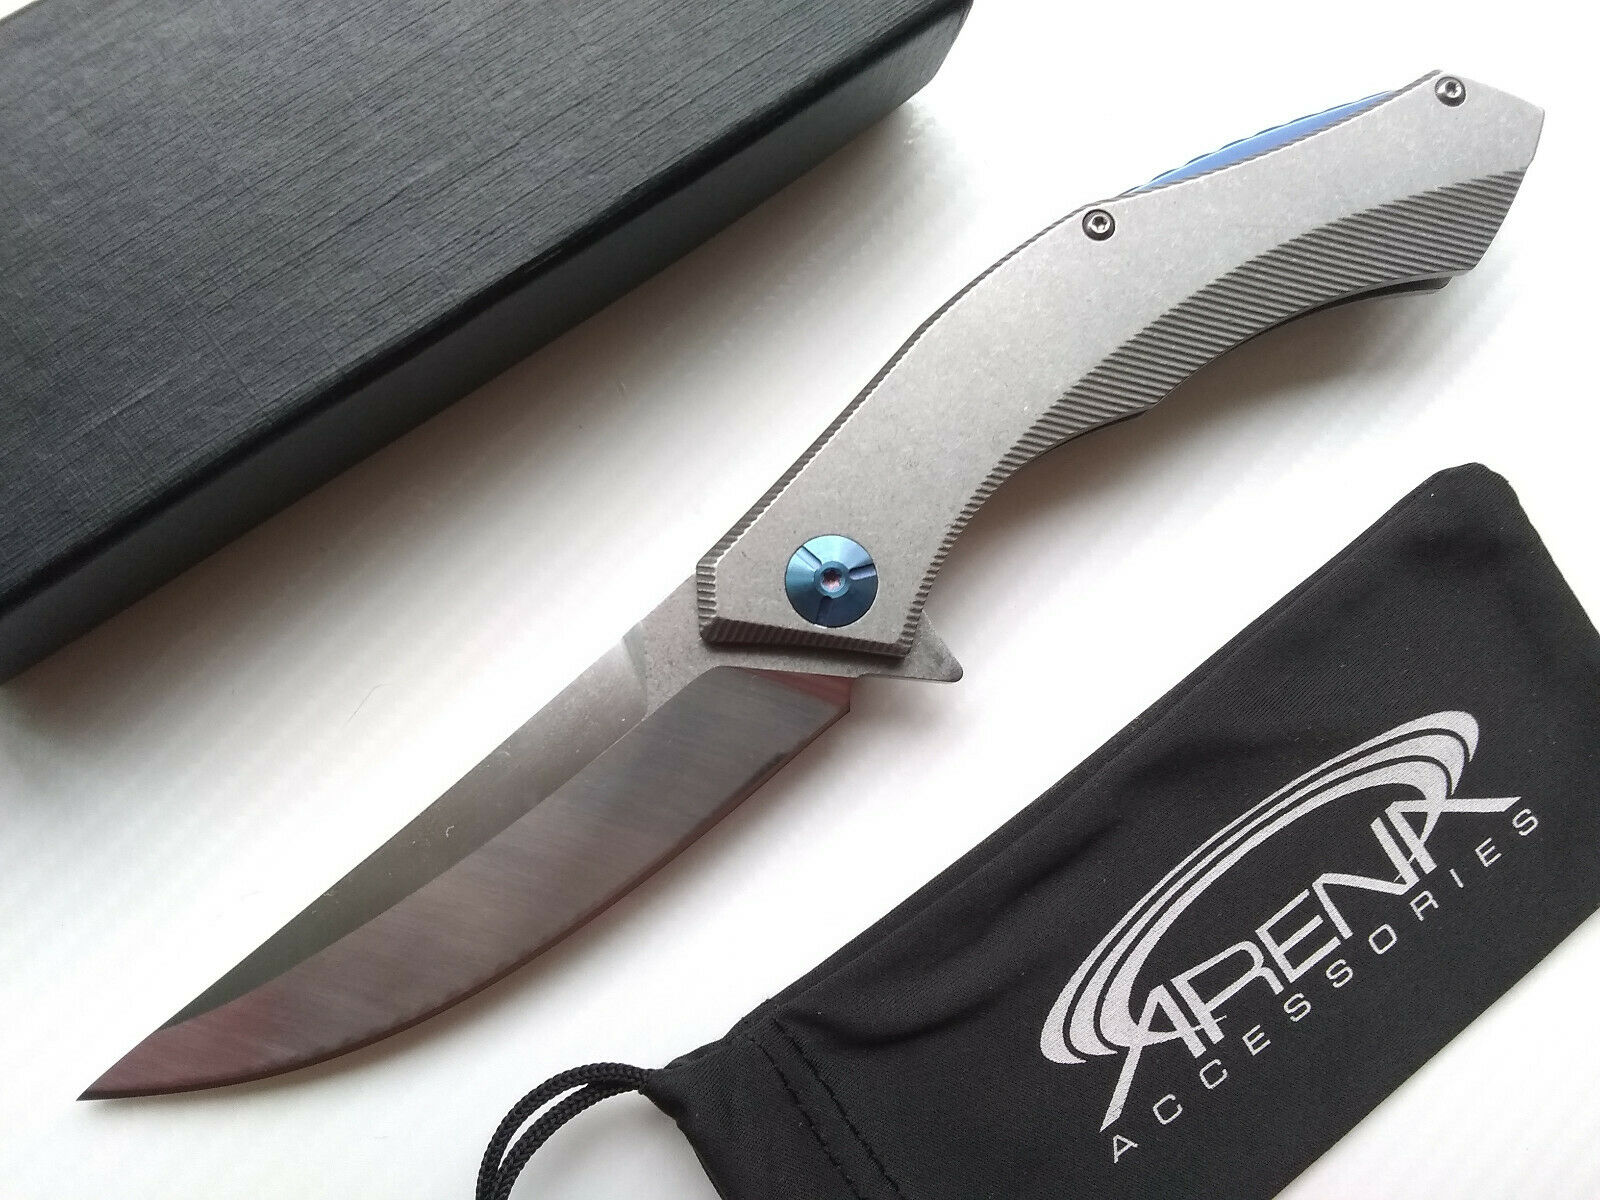 D2 Steel Pocket Knife Manual Open Ball Bearing Pivot Gray Tip Up Carry EDC with Blue Backspacer